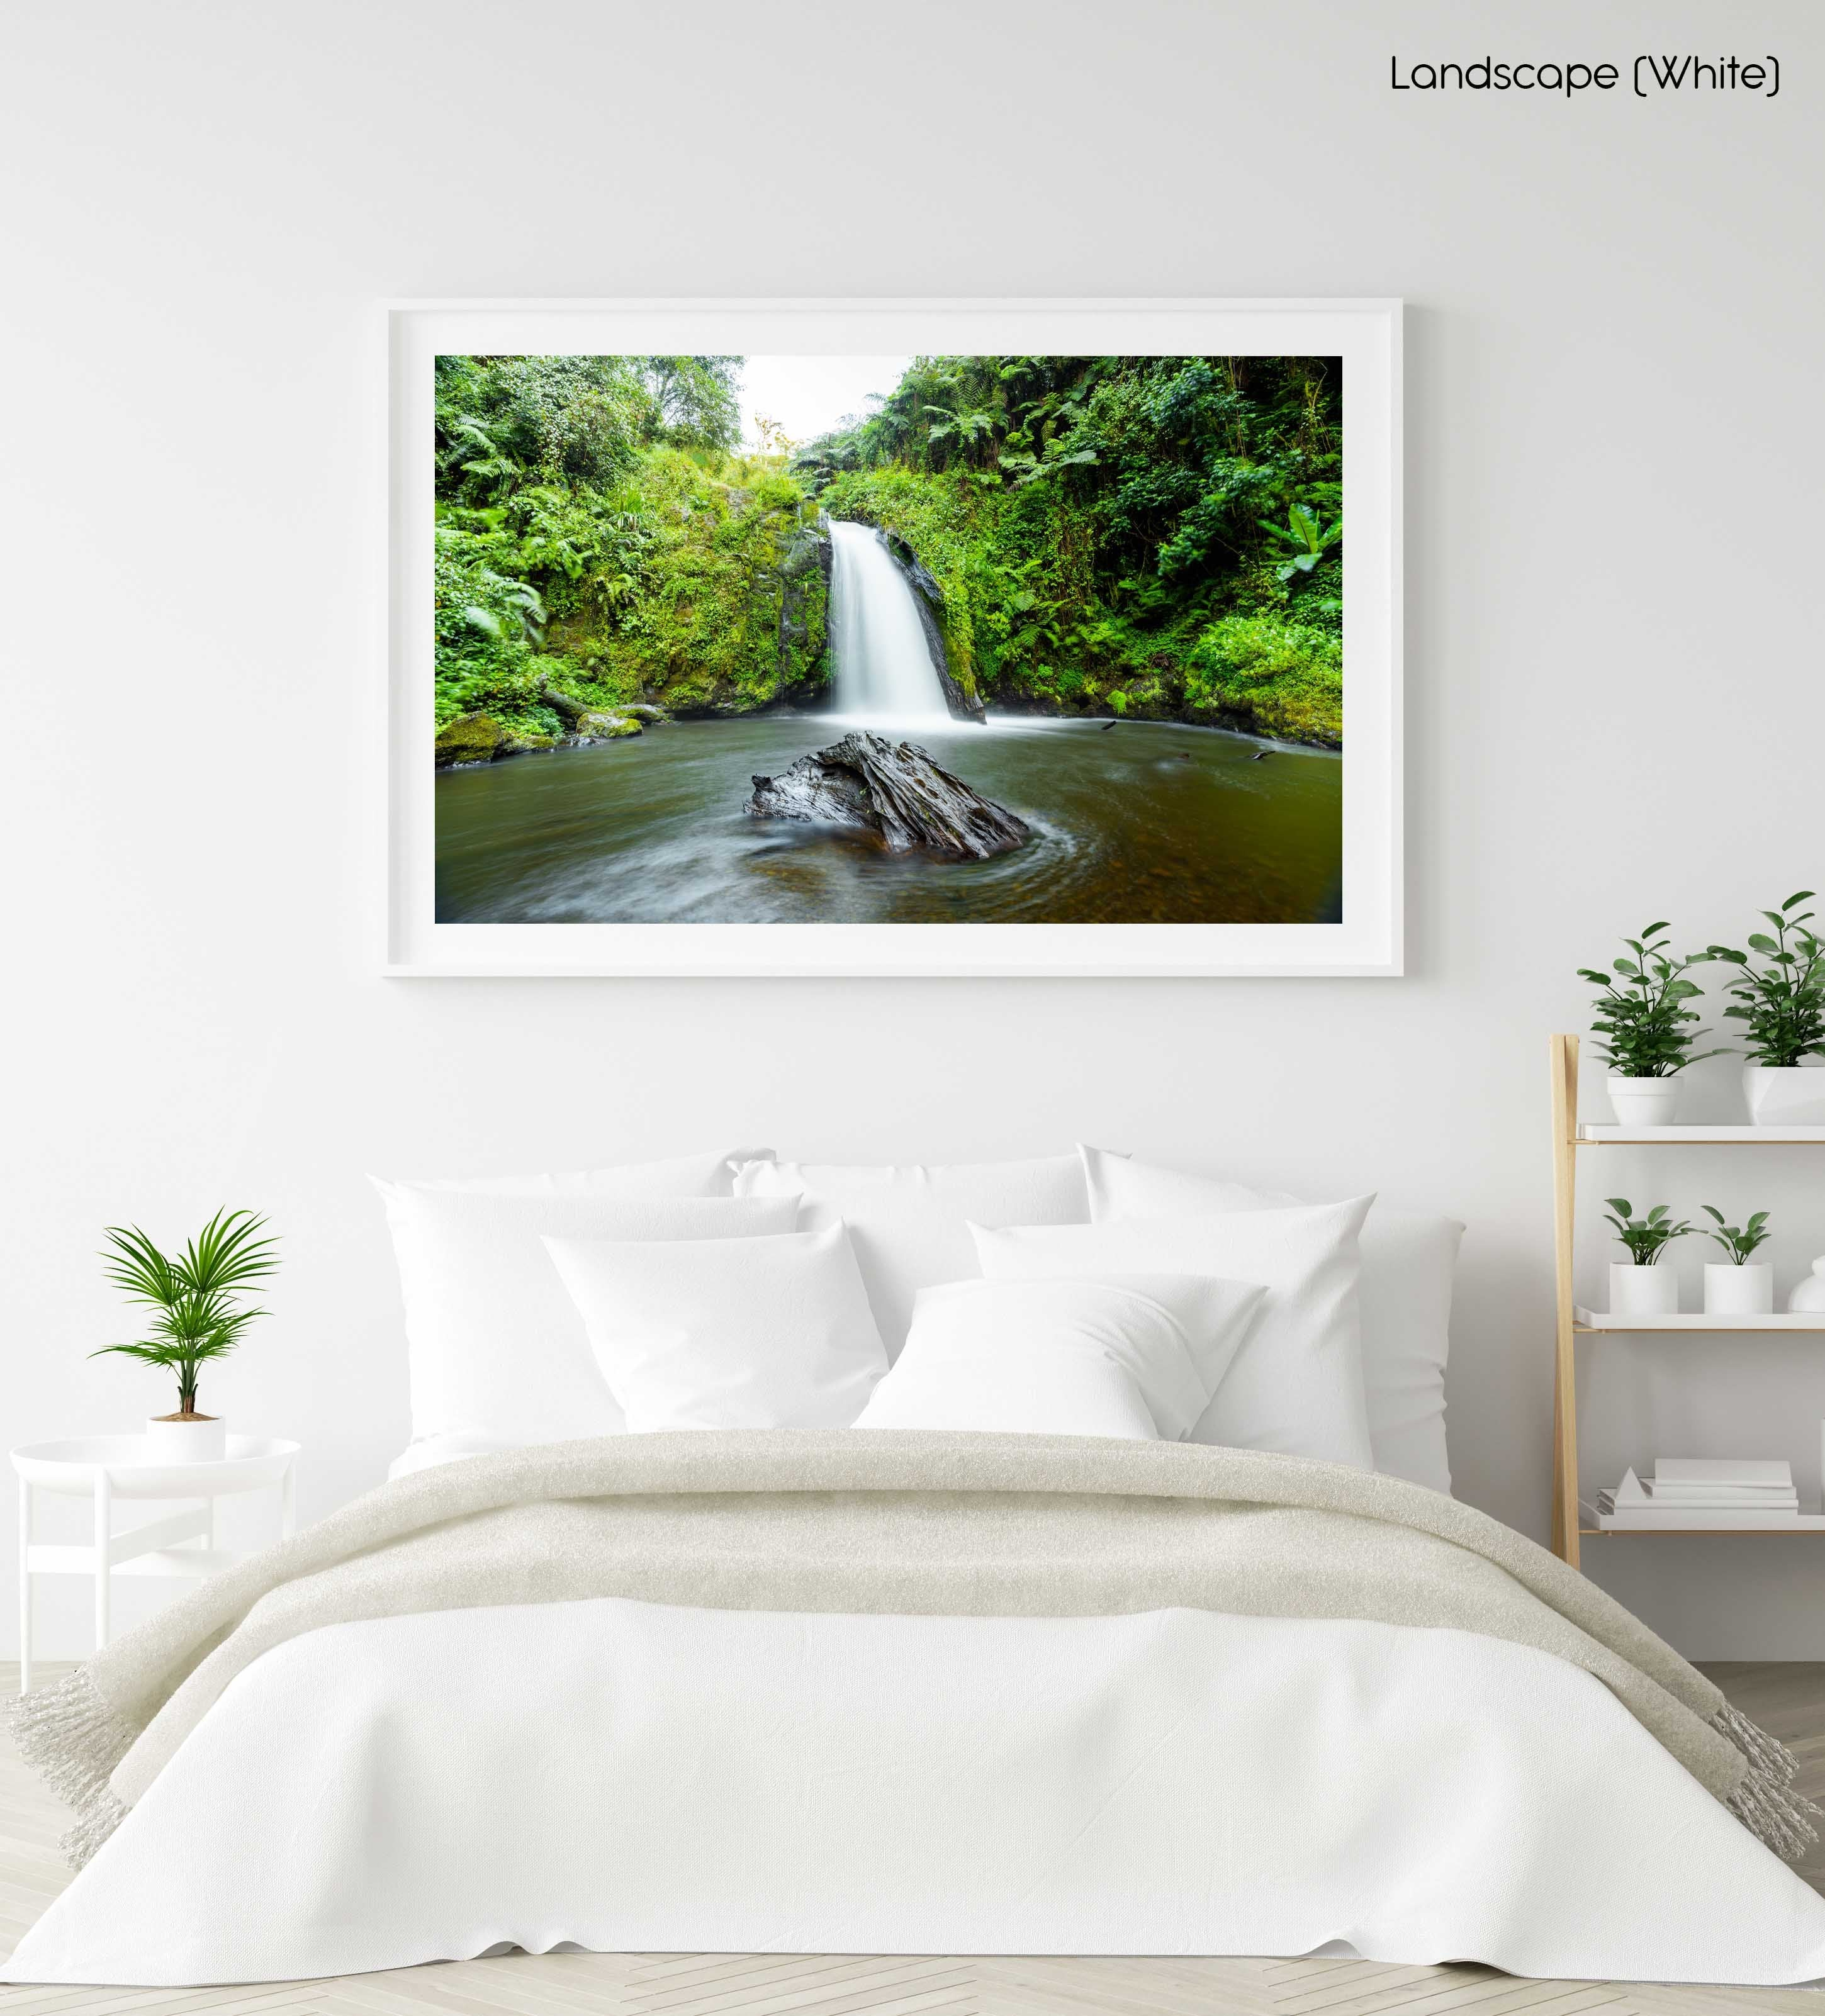 Green plants and a waterfall flowing in Mt Kenya in a white fine art frame